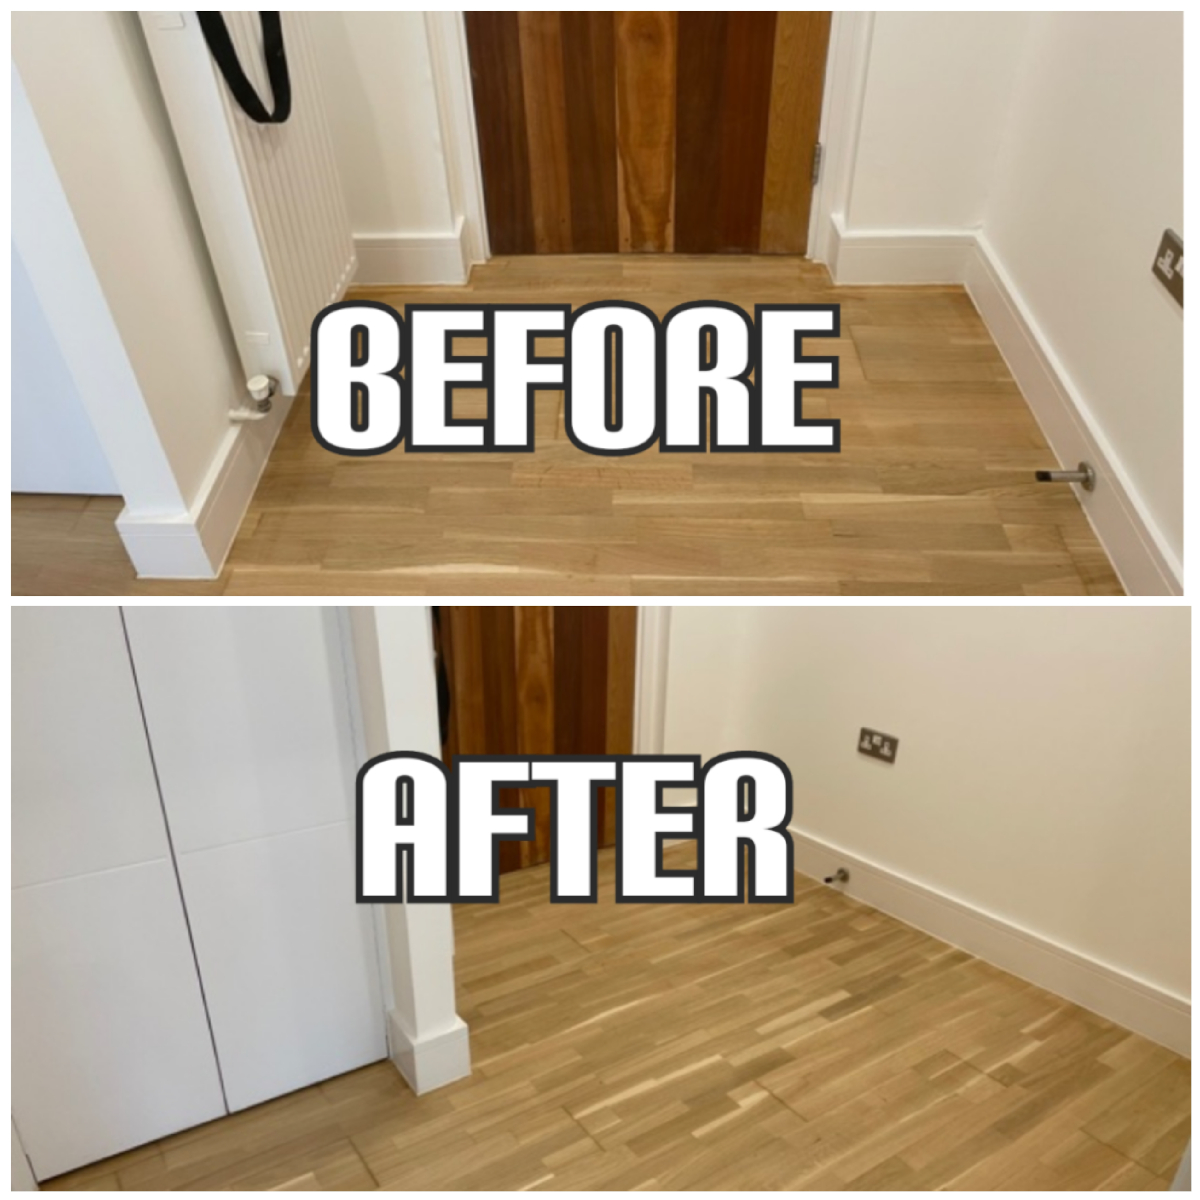 before and after Floor installation and refinishing in a hallway of apartment, Enfield